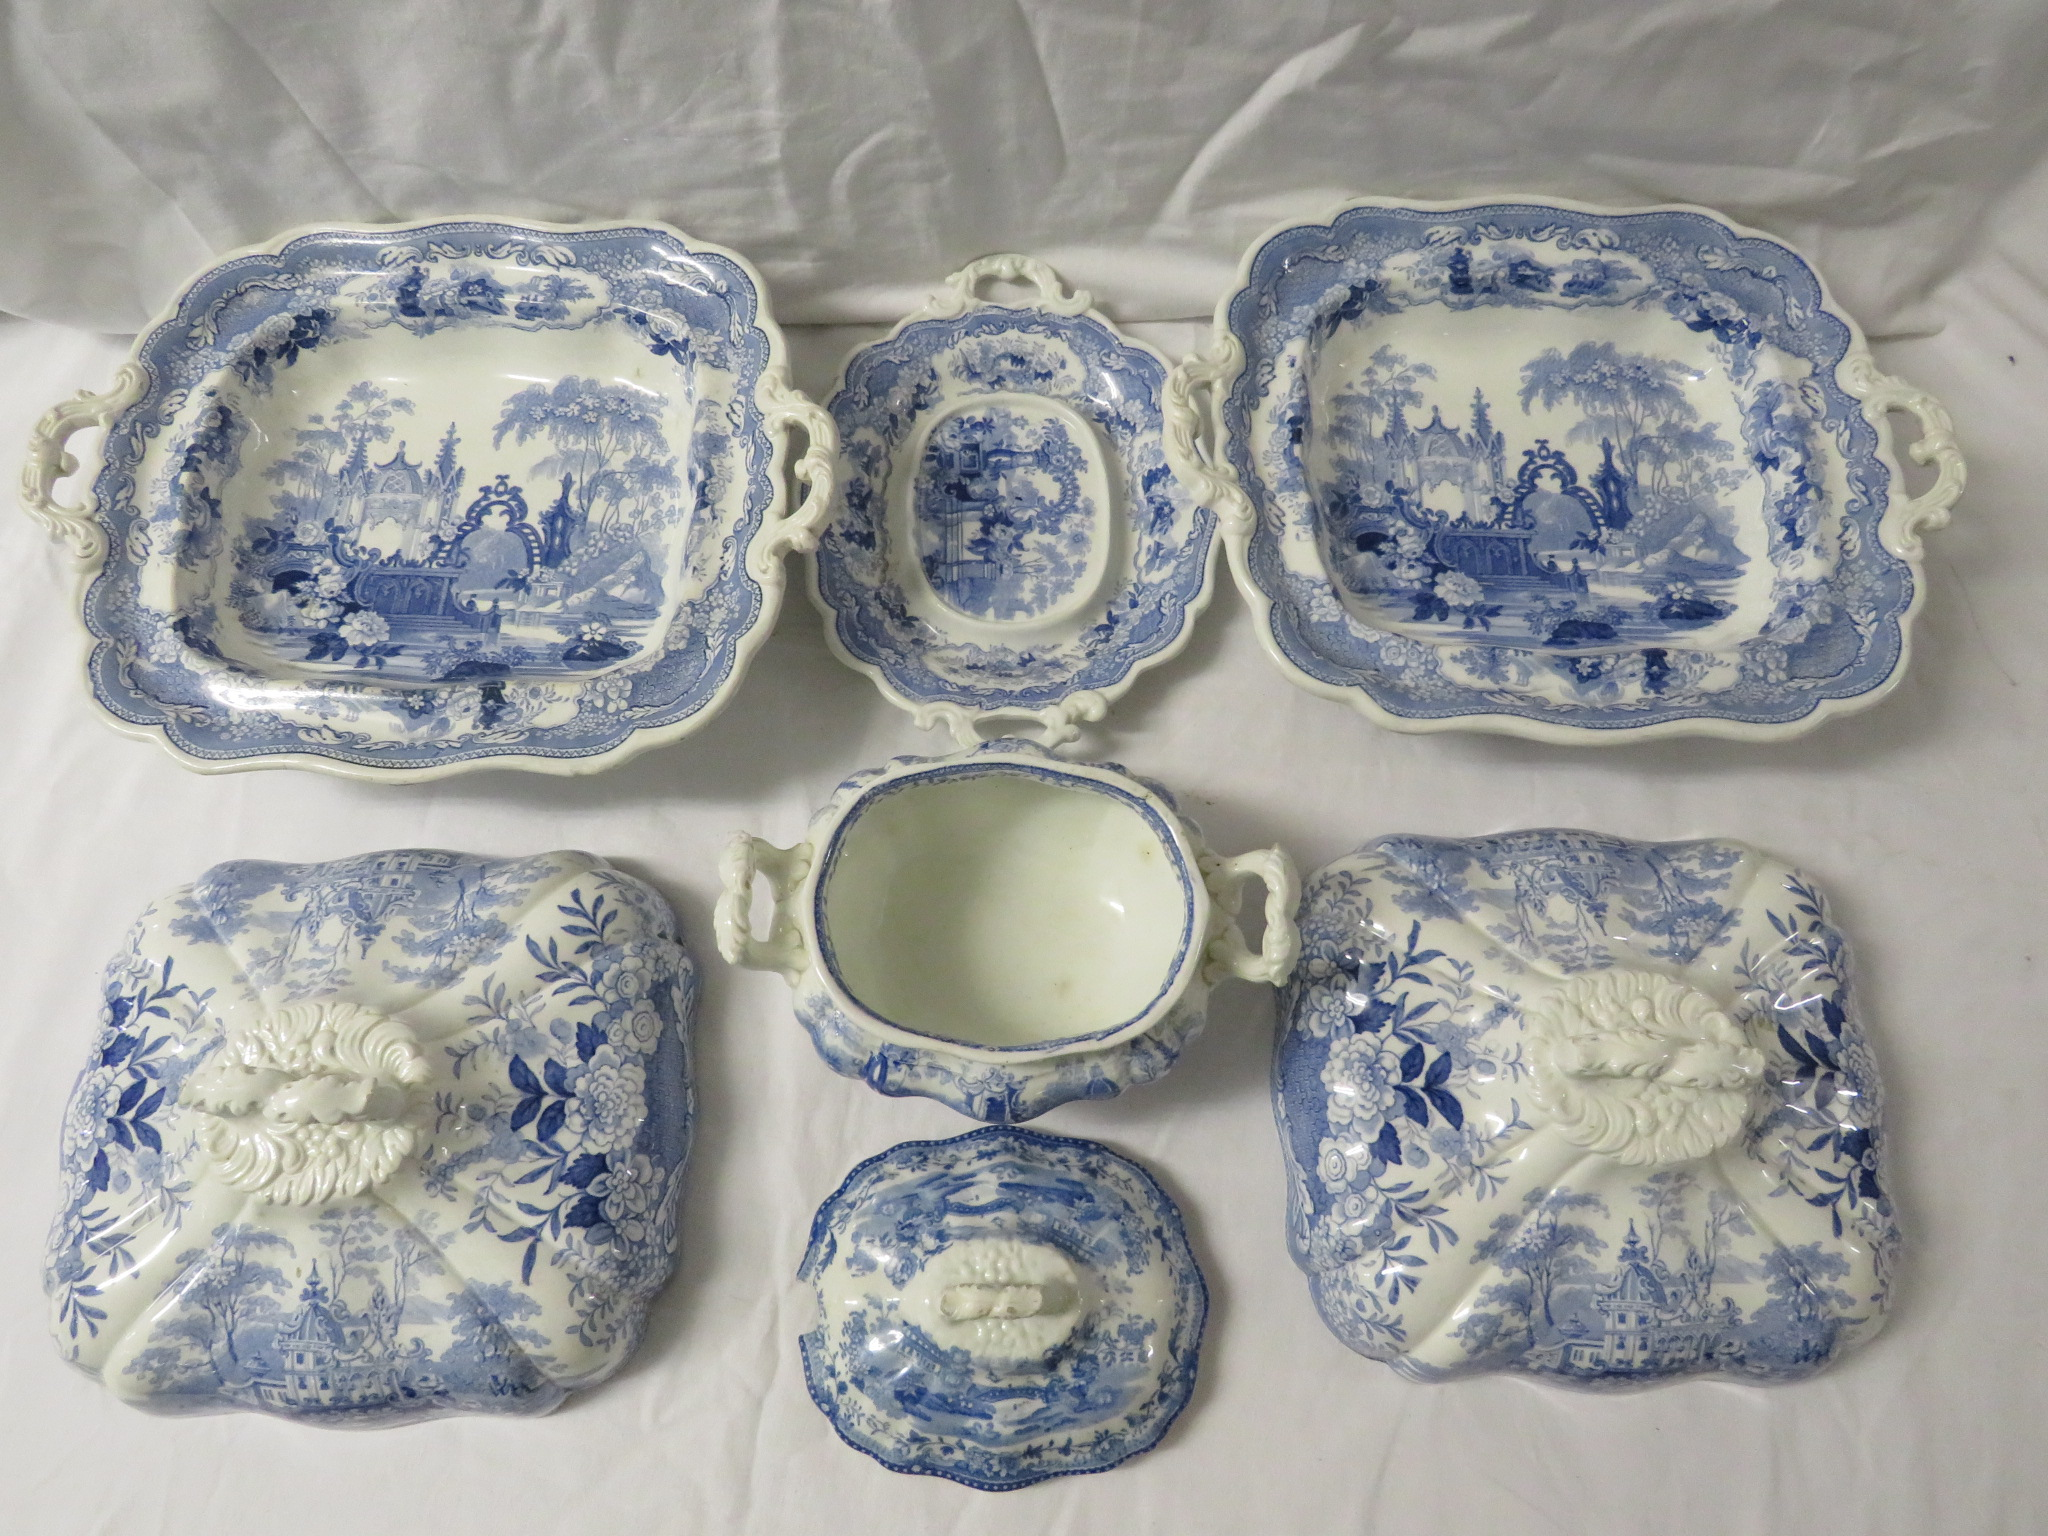 Lot 55 - Pountney and Allies blue and white transfer decorated Sicilian pattern pottery dinner ware - a